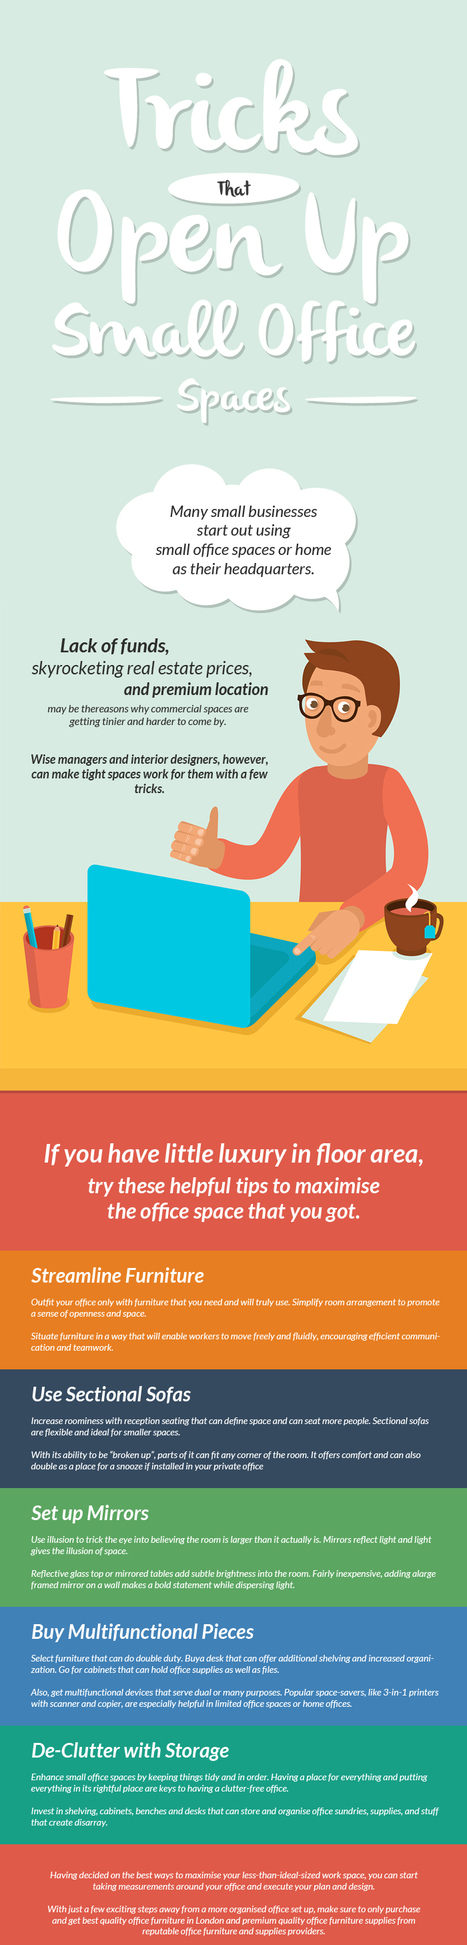 Tricks That Open Up Small Office Spaces | Office Furniture UK | Scoop.it